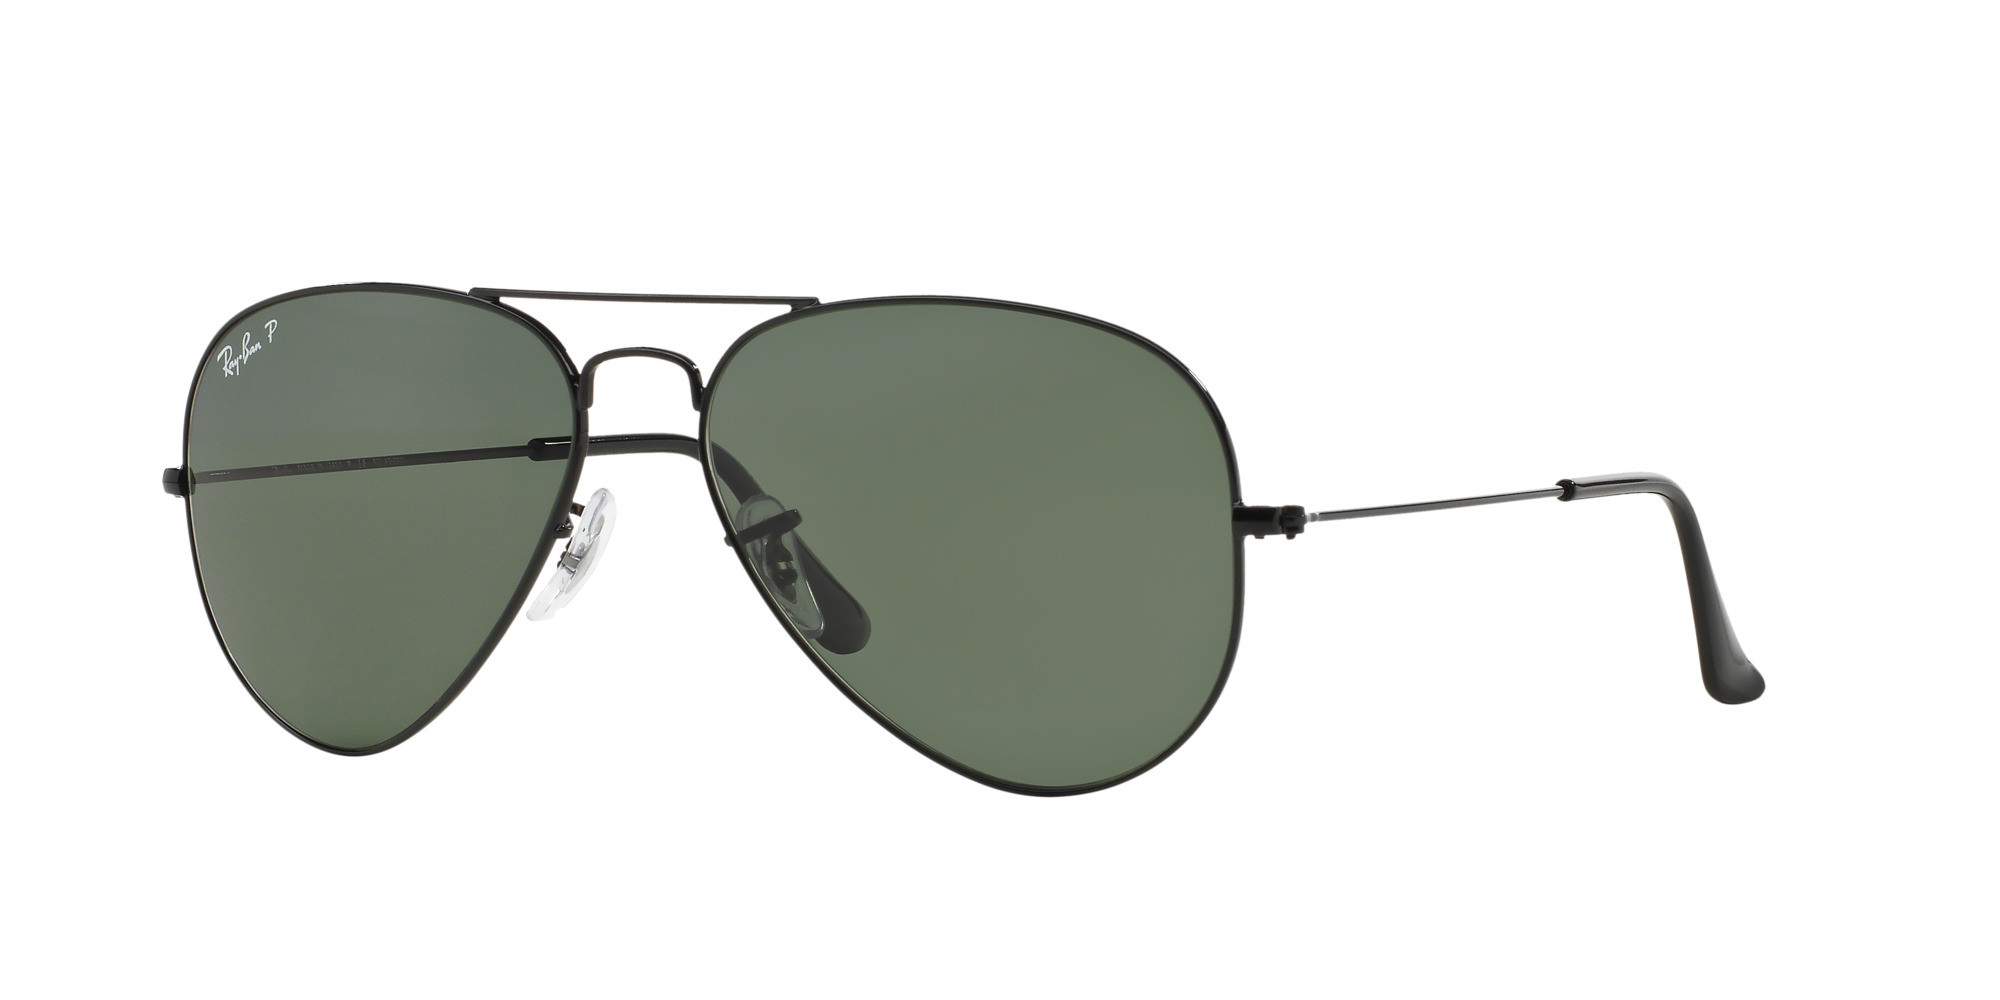 Ray Ban Rb 3025 002 58 Aviator Polarizadas 62 Negras Aviador